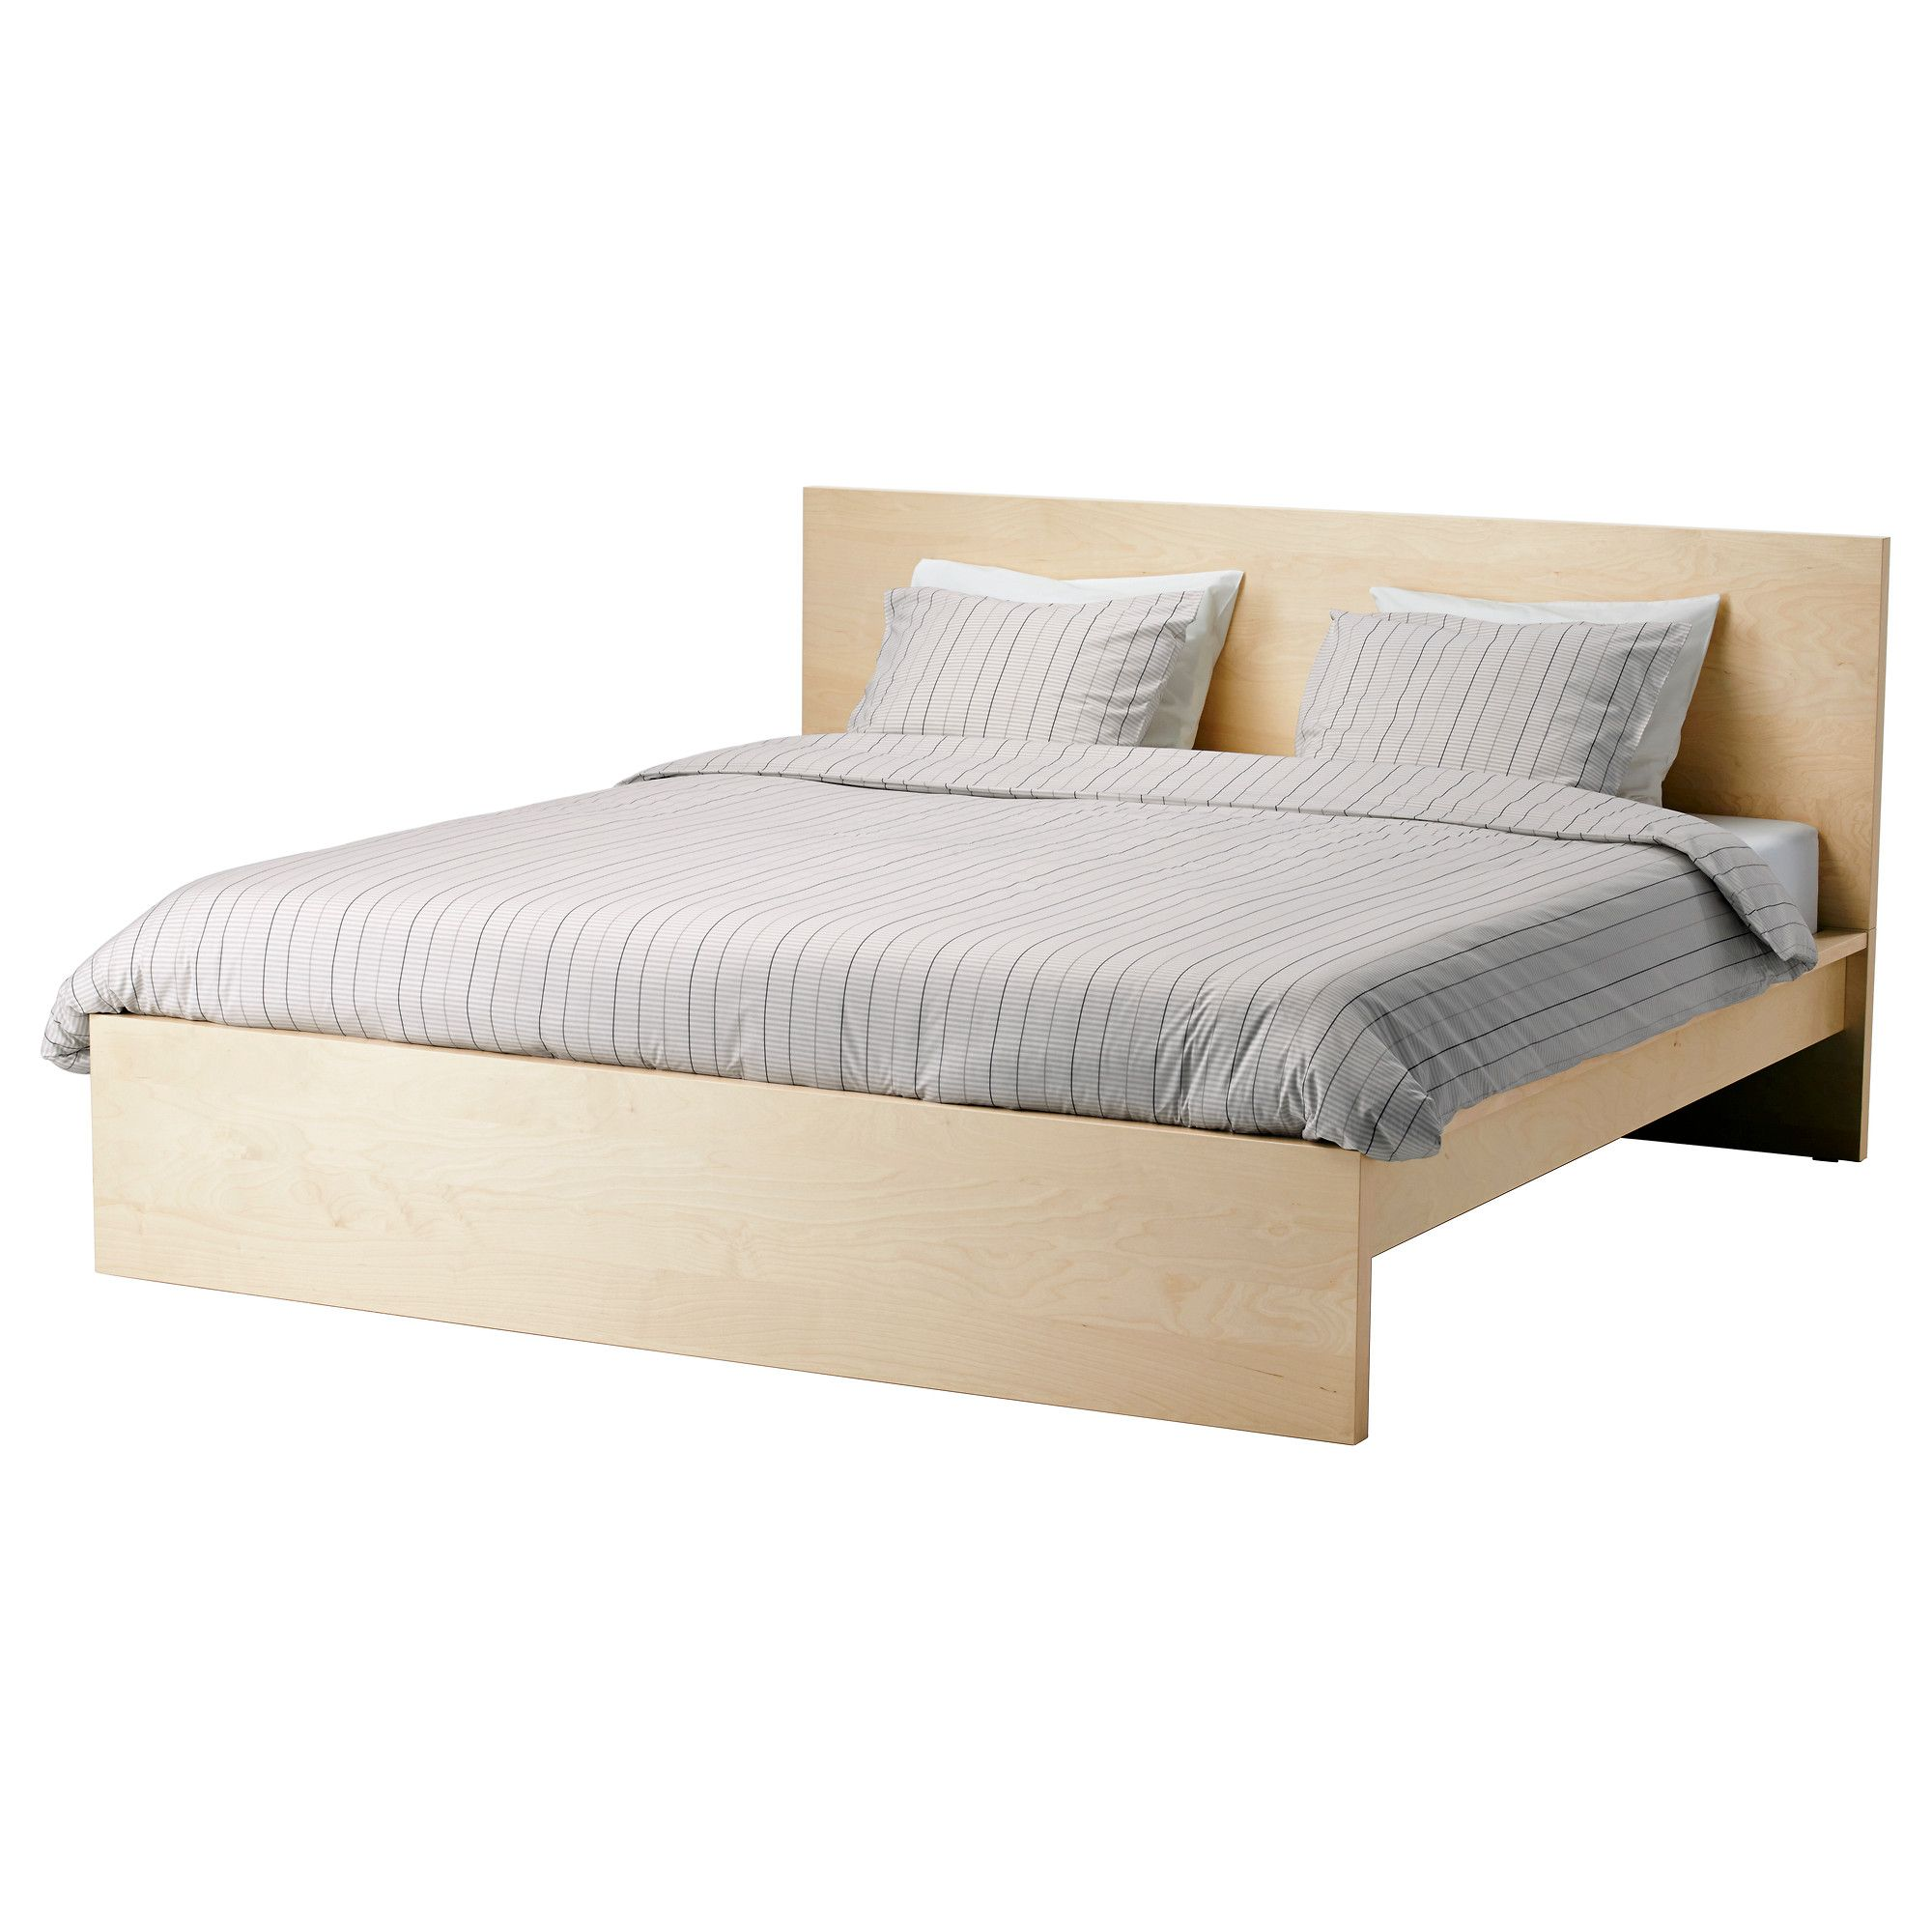 Overawe Queen Bed Frames With 2 Pillows | Queen Beds | Pinterest | Malm